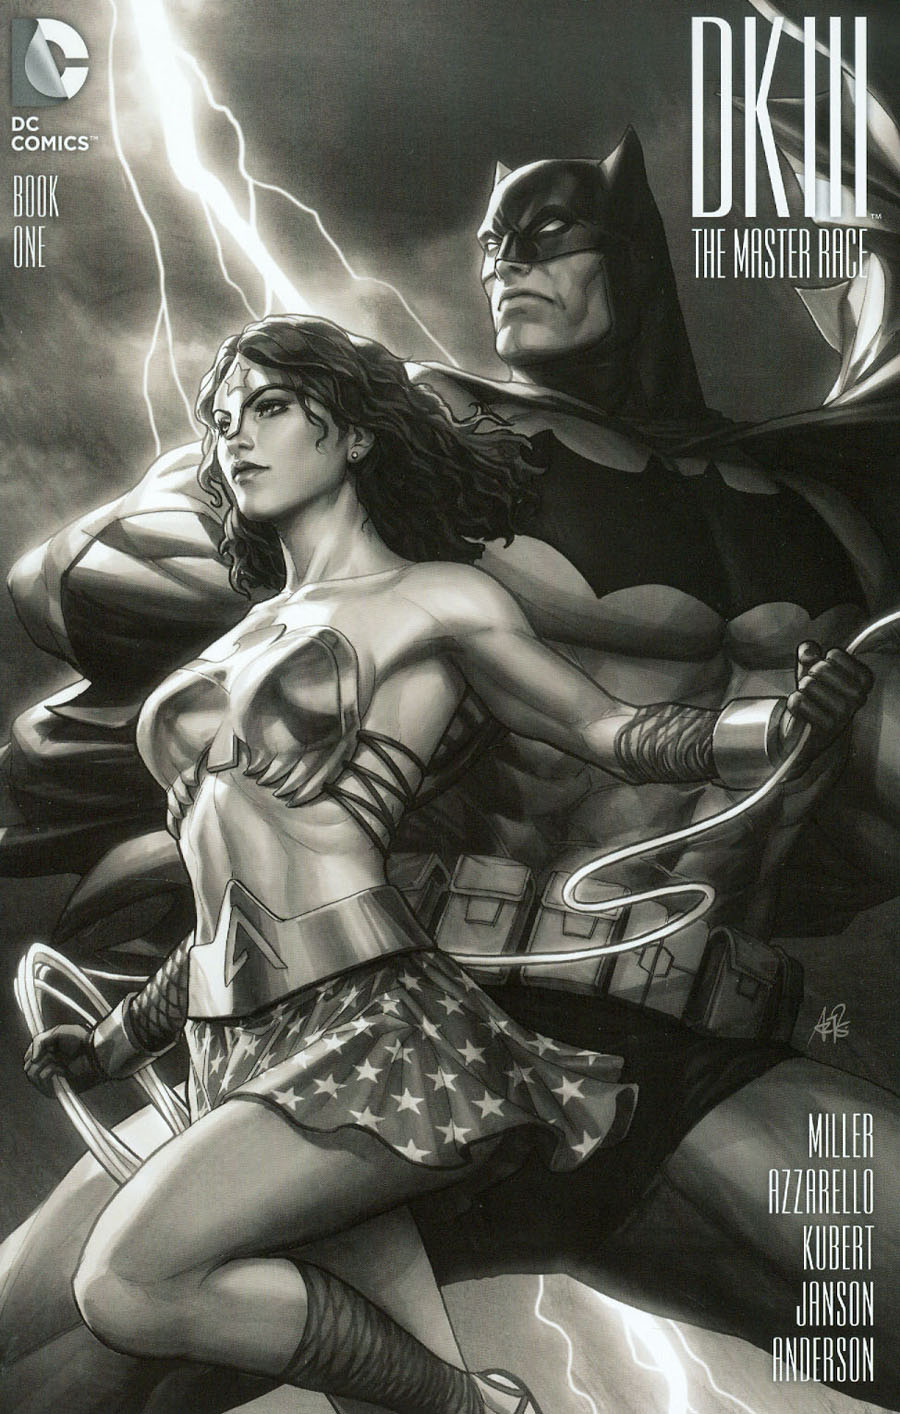 Dark Knight III The Master Race #1 Cover F Limited Edition Comix Exclusive Stanley Artgerm Lau Black & White Variant Cover